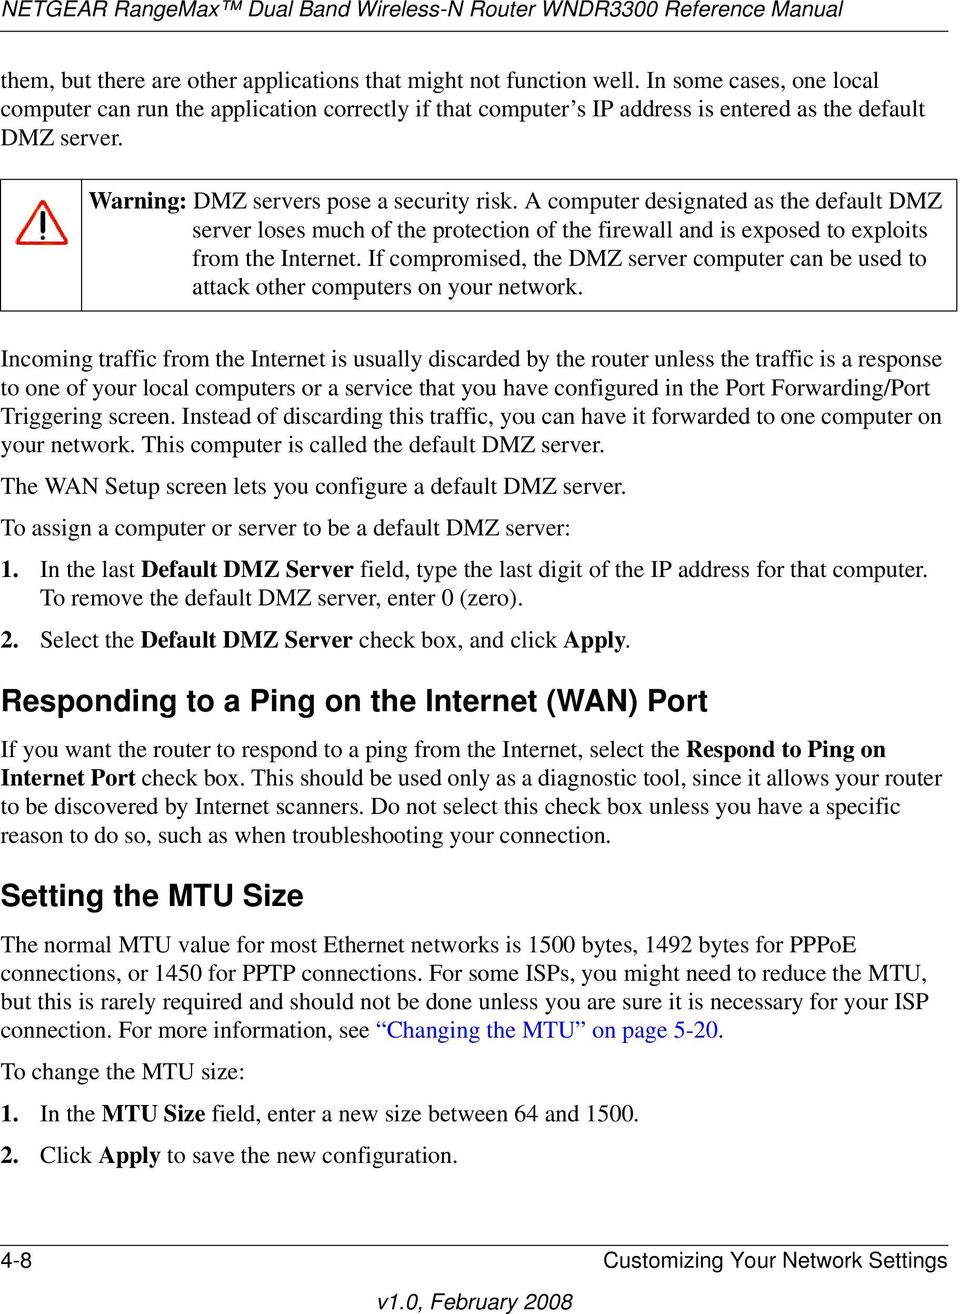 A computer designated as the default DMZ server loses much of the protection of the firewall and is exposed to exploits from the Internet.